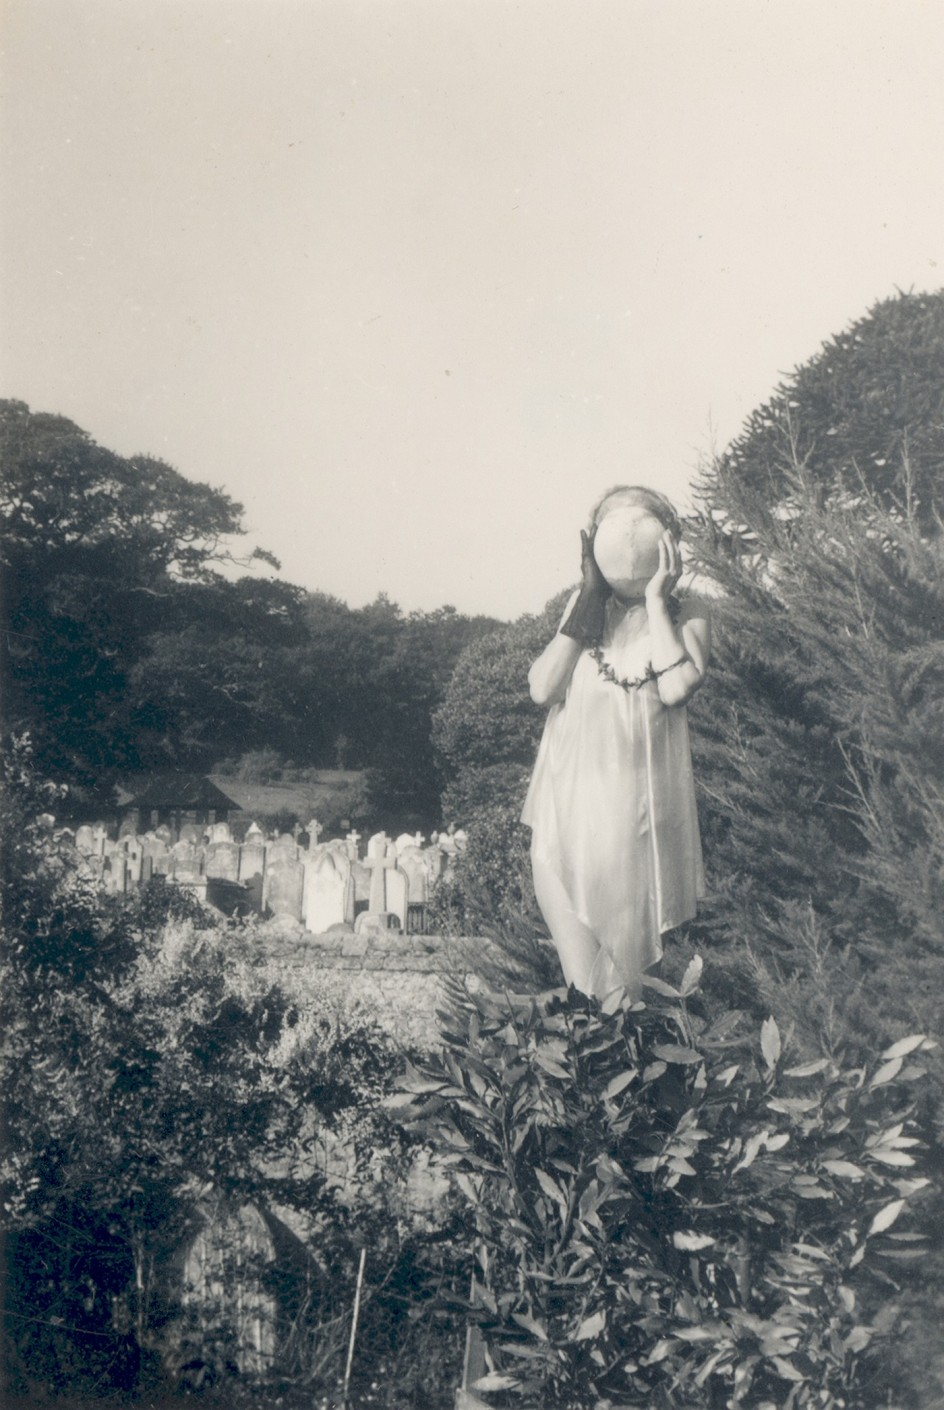 Self-portrait (with masked face and graveyard) by Claude Cahun, c.1947. Foto de 1947 de la francesa Claude Cahun